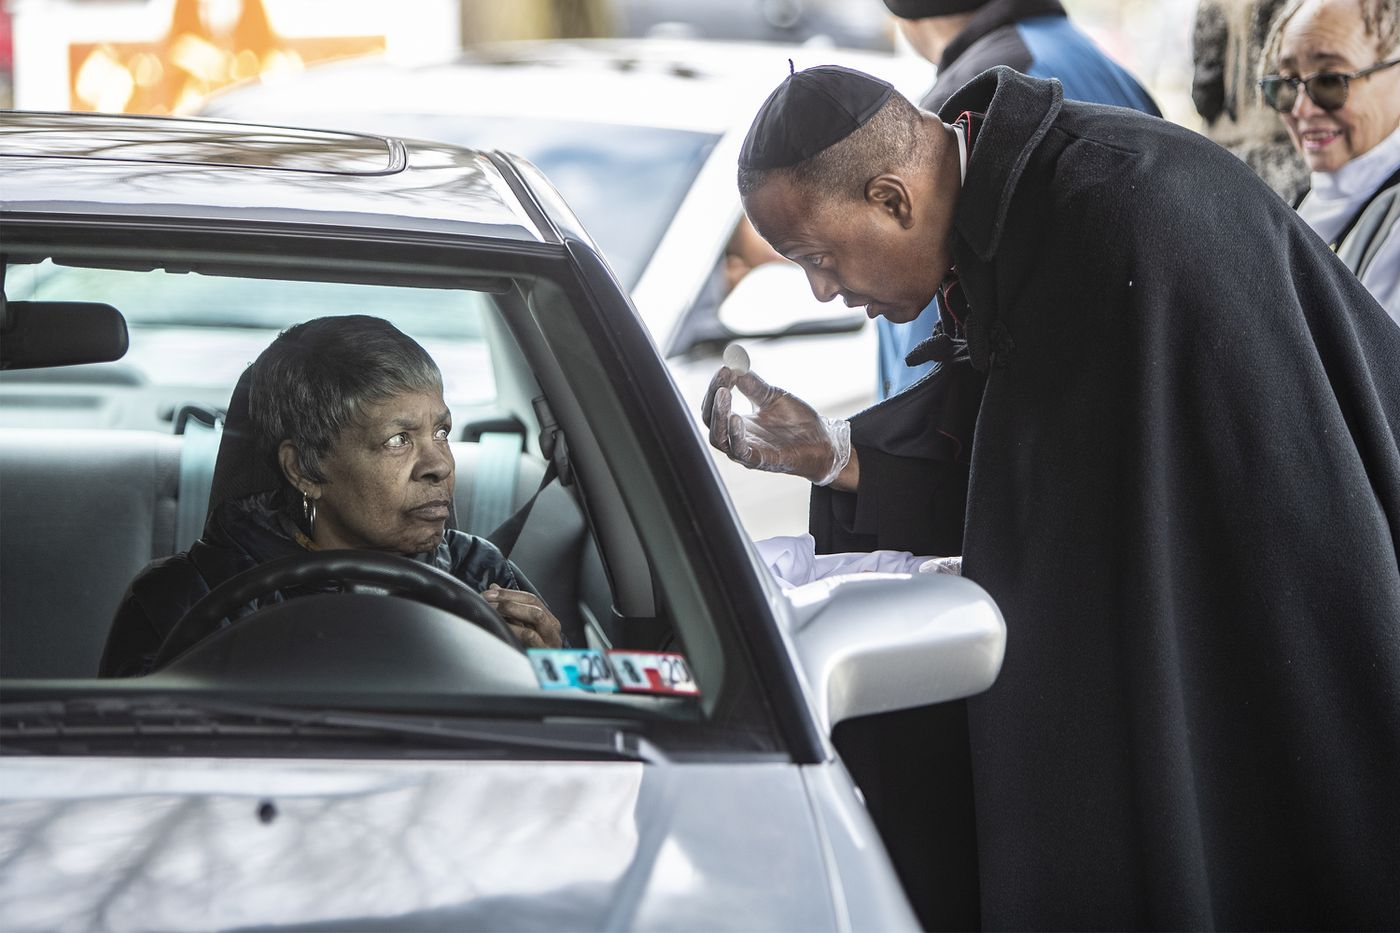 The Rev. Martini Shaw (right) gives a communion wafer to a St. Thomas parishioner as she drives through a covered area of the church in Philadelphia's Overbrook Farms neighborhood.